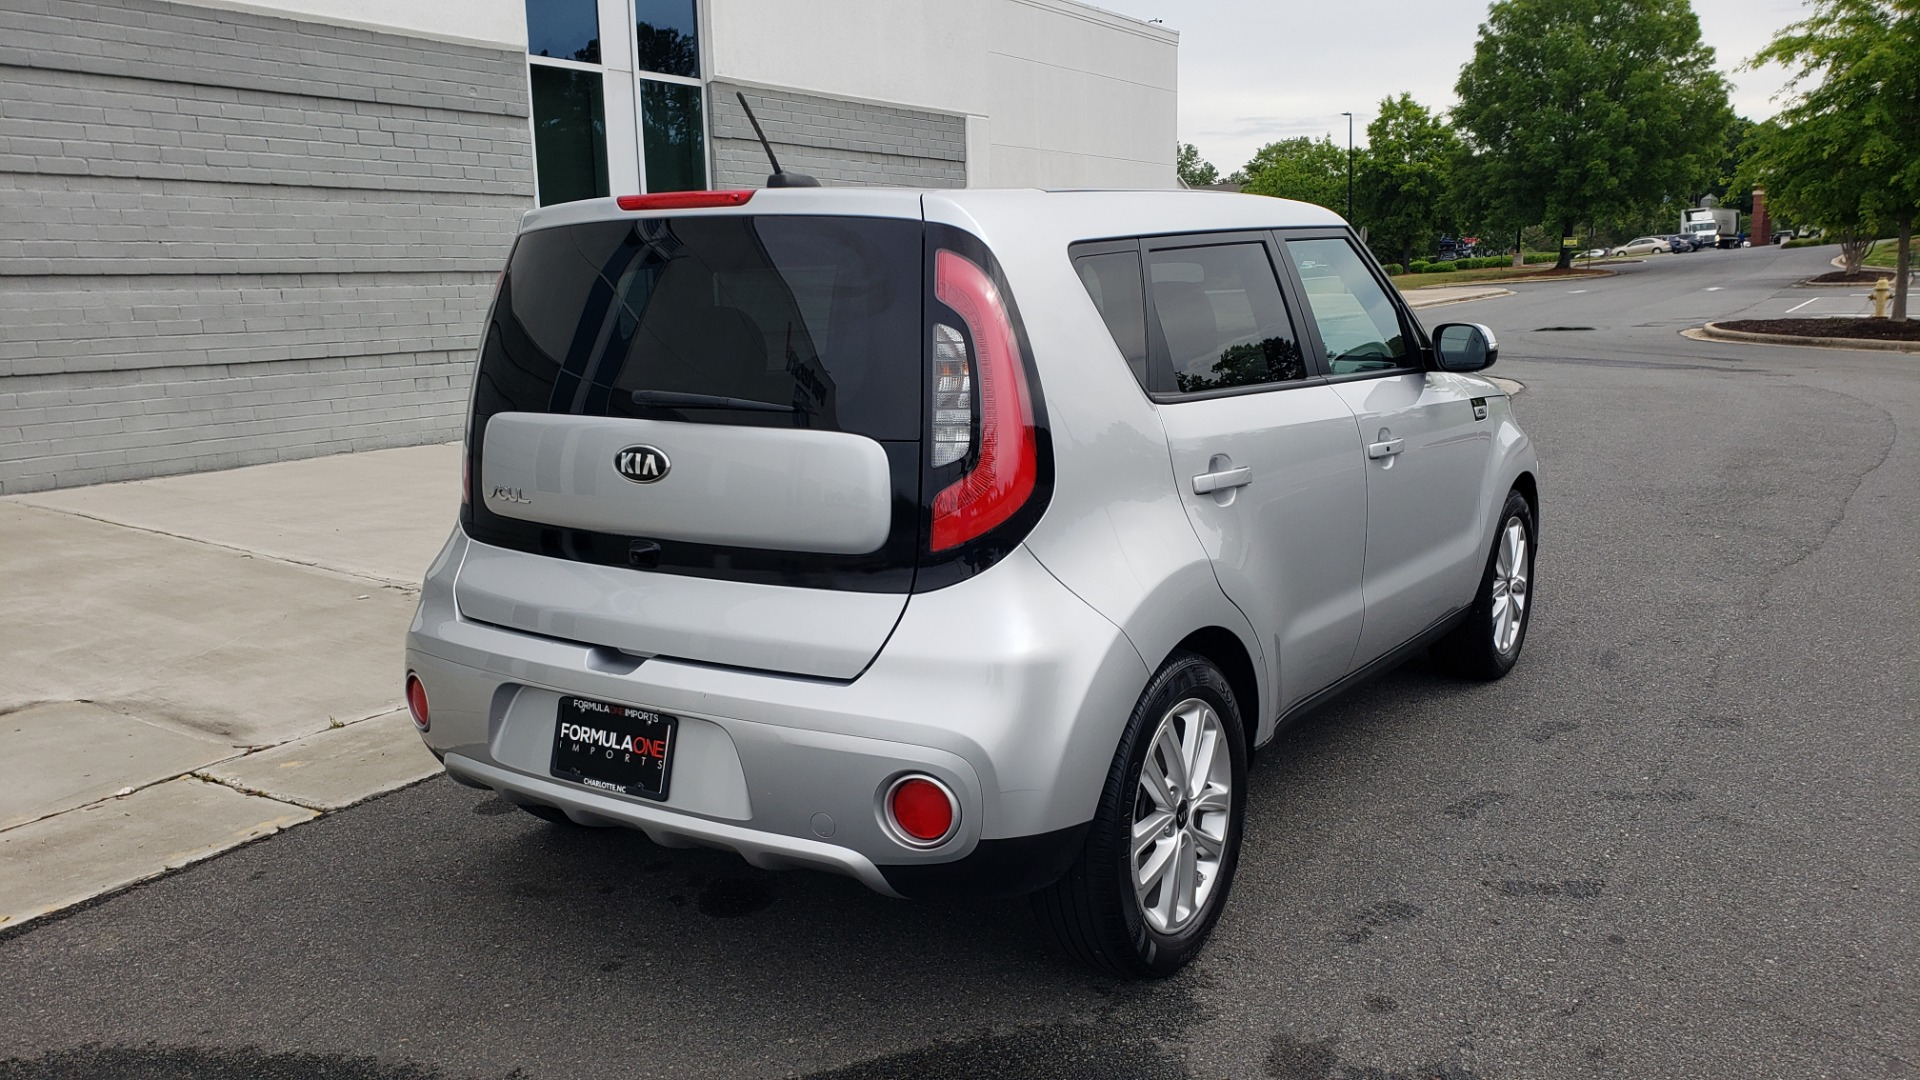 Used 2017 Kia SOUL PLUS / NAV / SUNROOF / LEATHER / HTD STS / REARVIEW for sale $16,995 at Formula Imports in Charlotte NC 28227 4